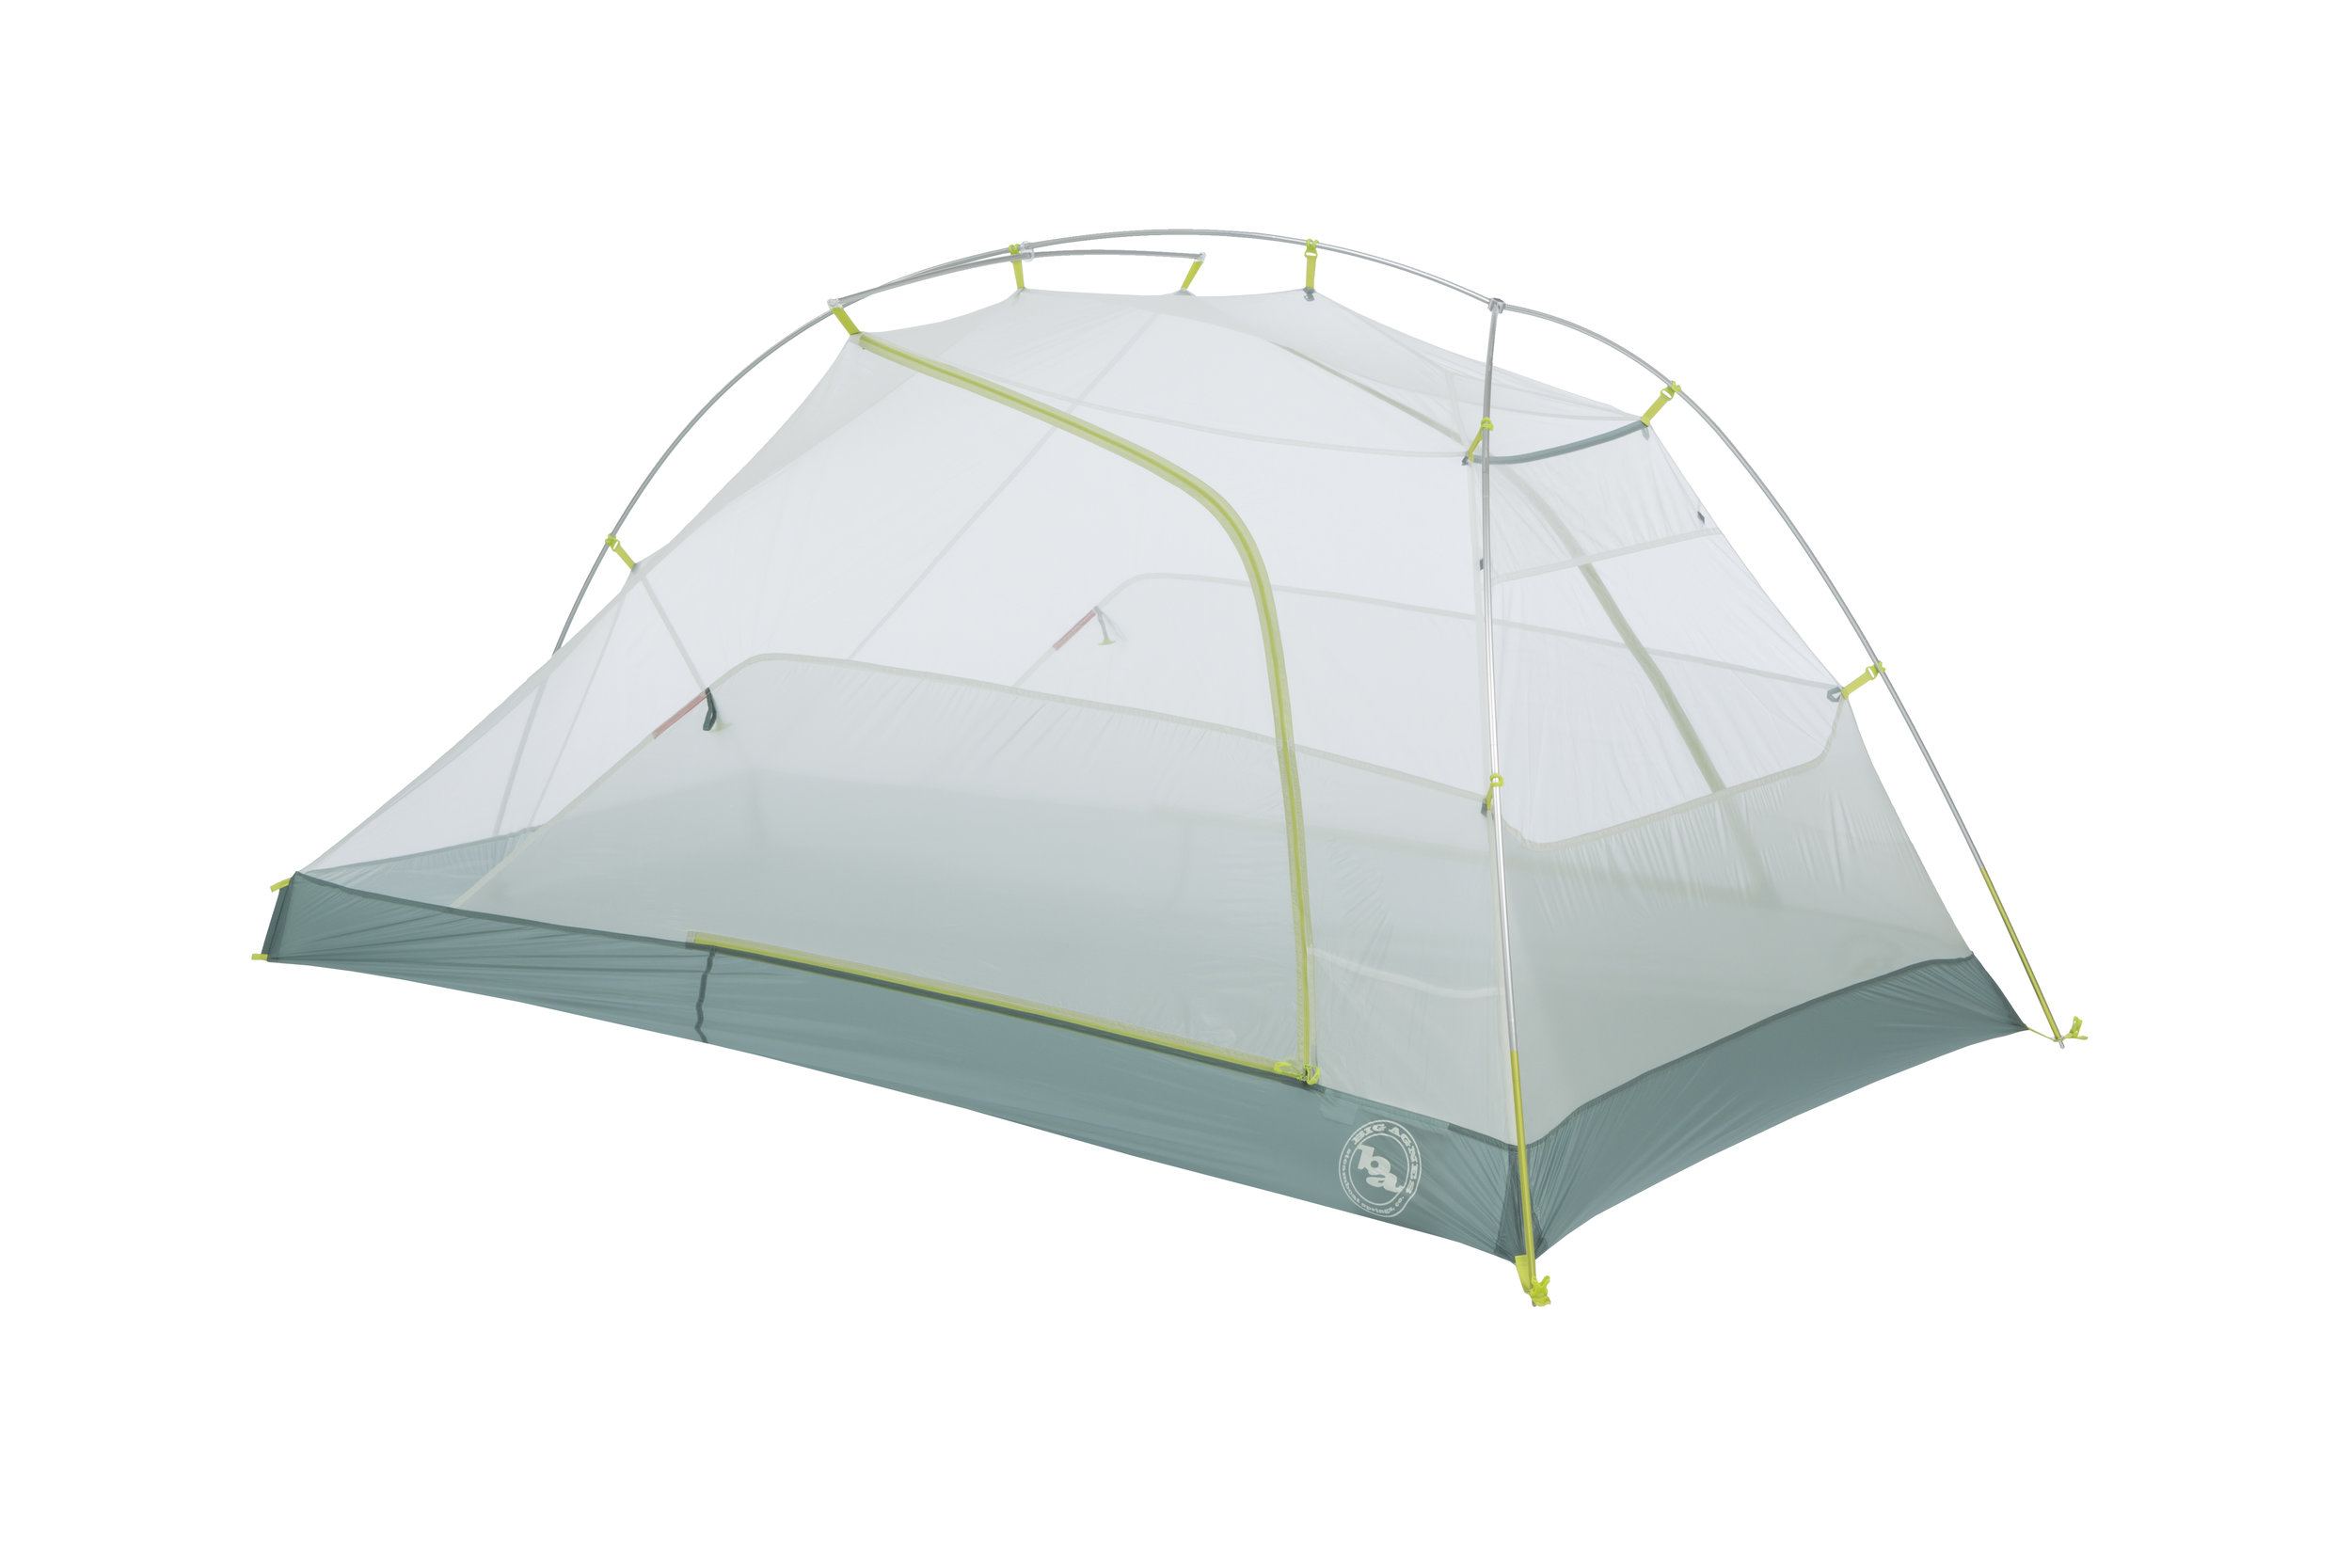 Tiger Wall 2 Platinum_Tent.jpg